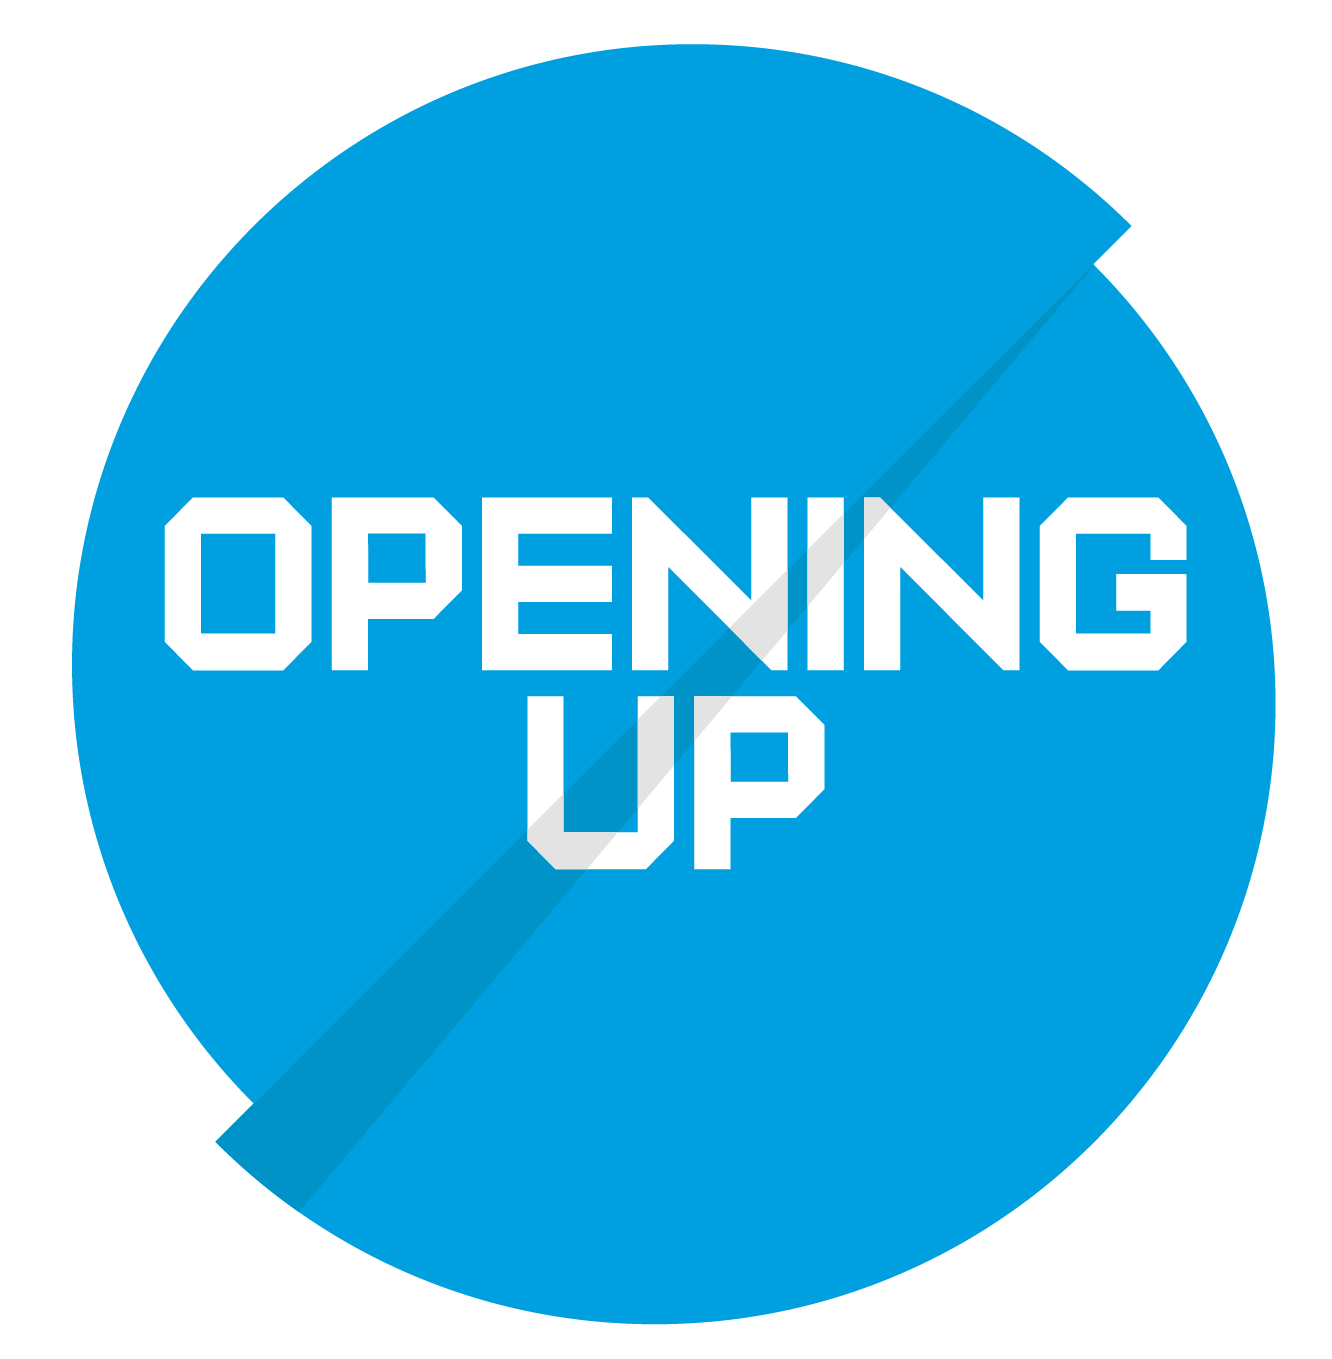 Opening Up Cricket